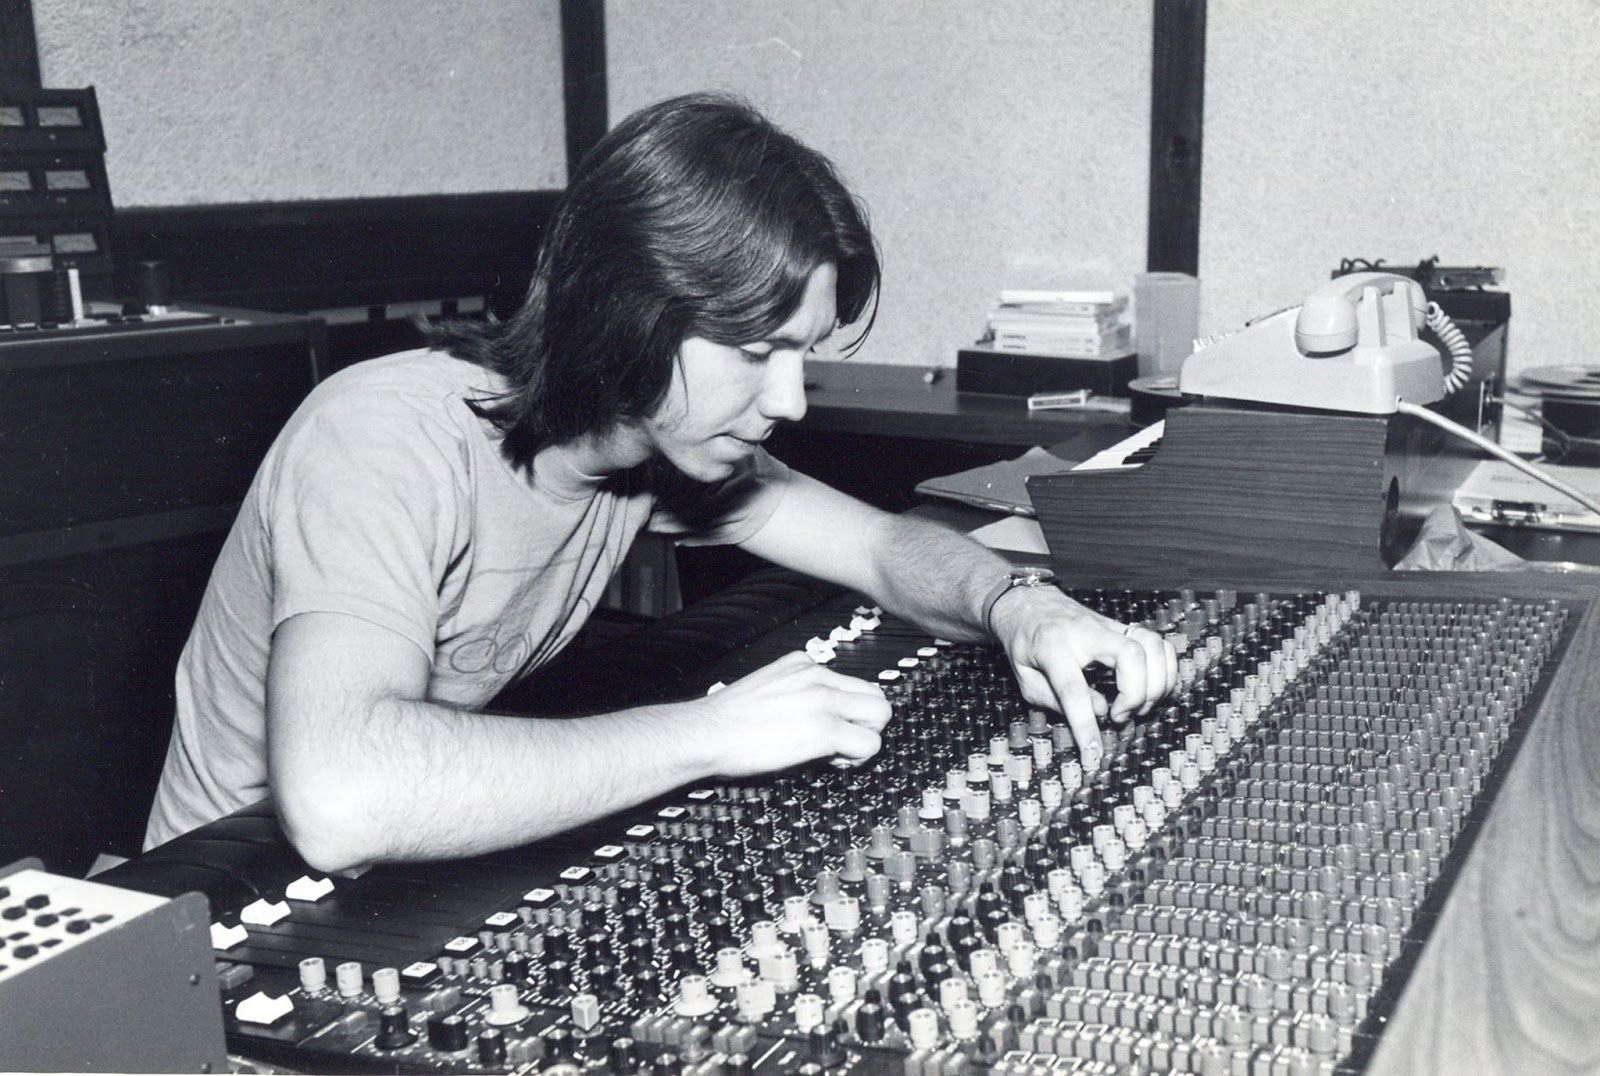 Jonathan David Brown, American record producer and audio engineer